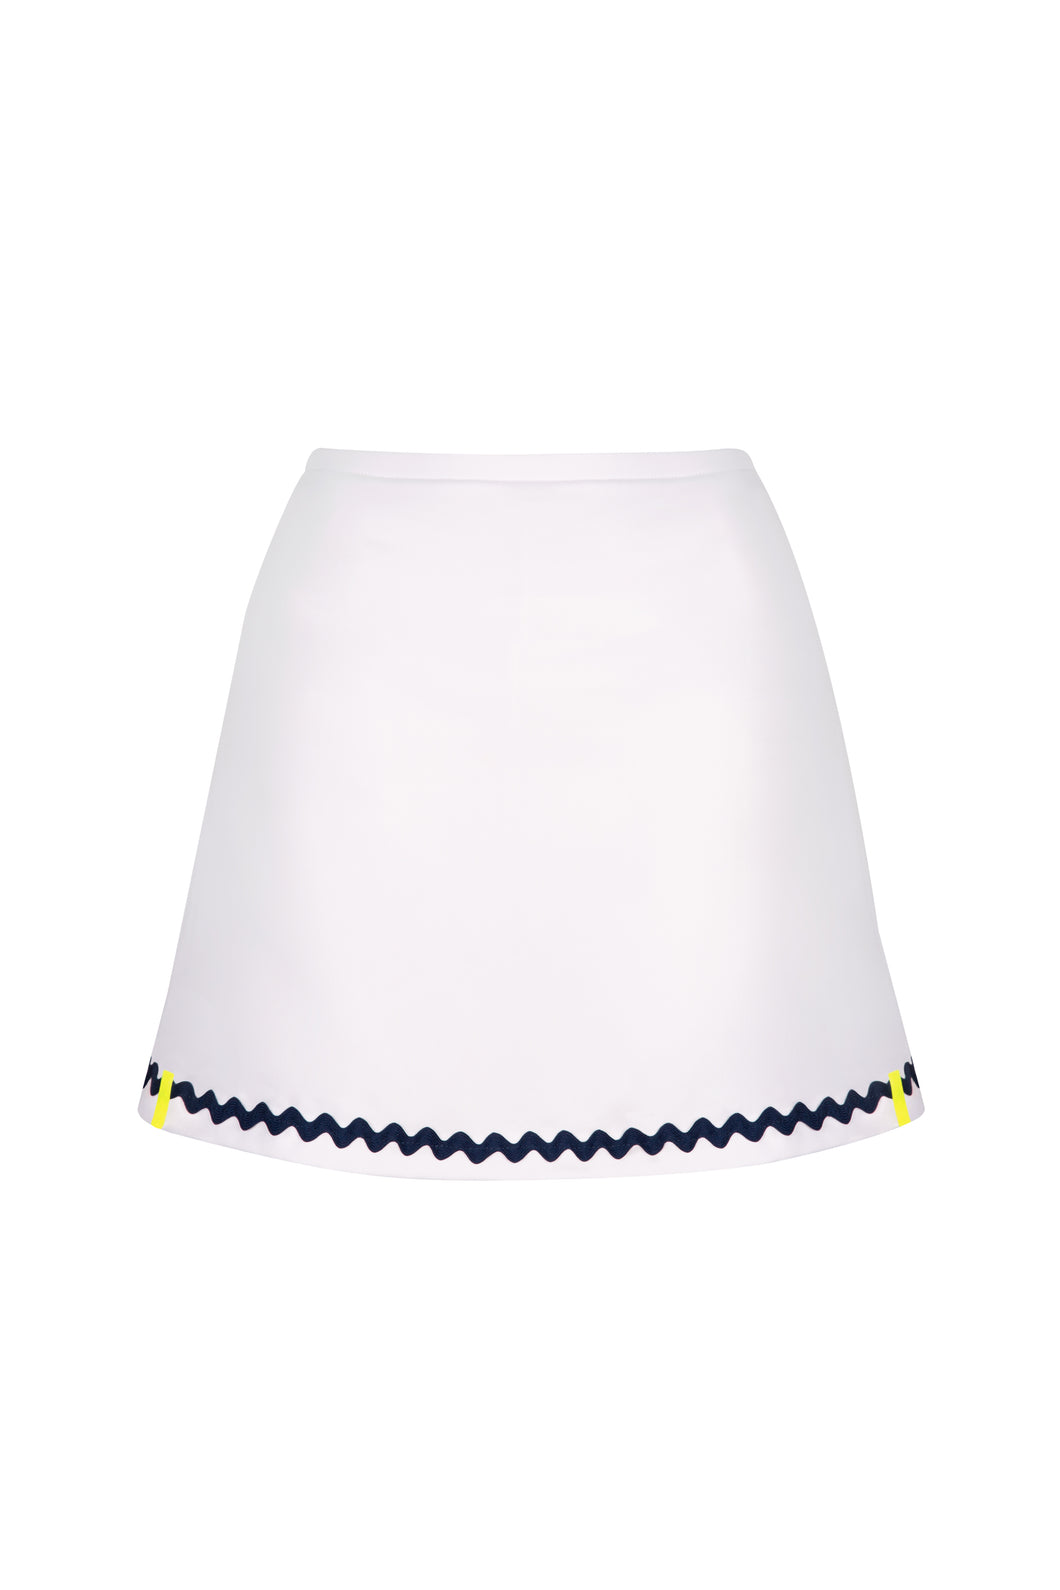 White Tennis Skort in Navy Ric Rac Trim